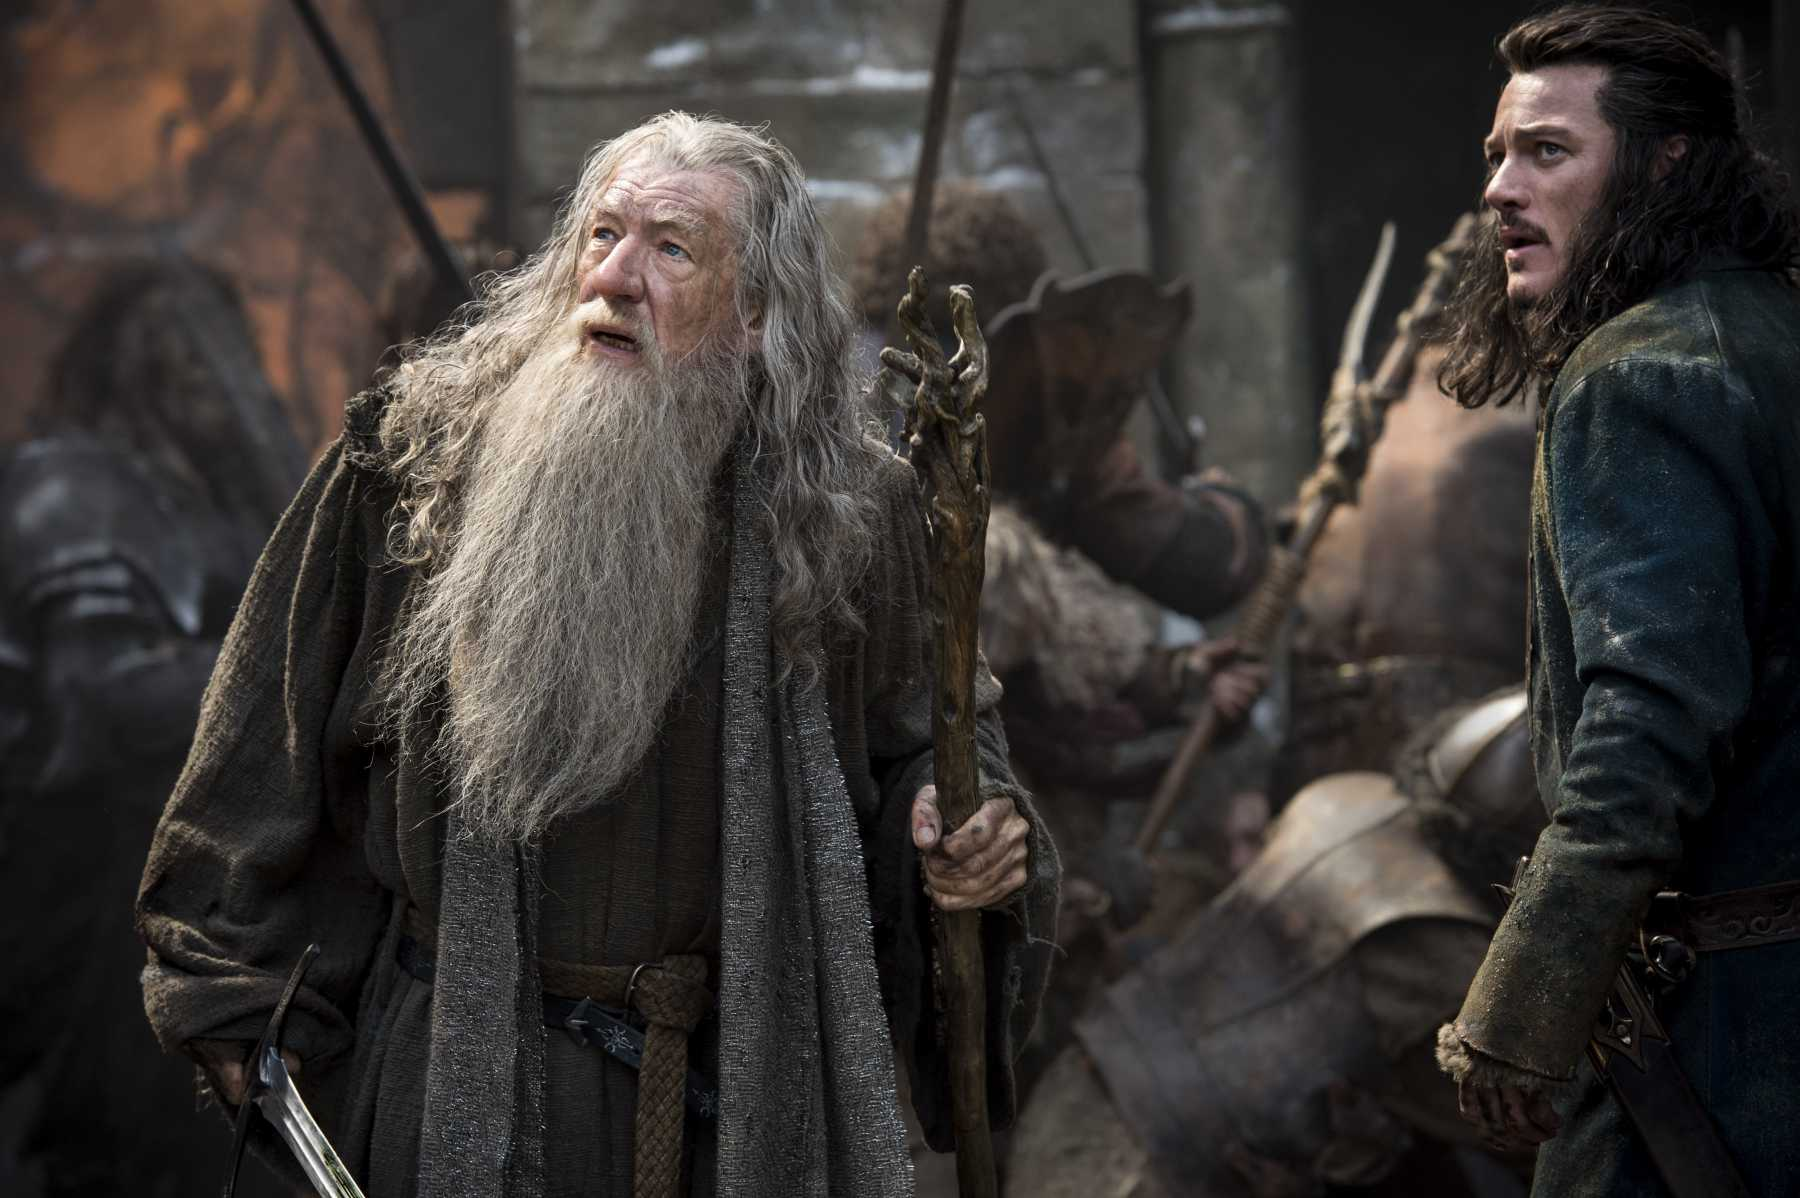 Action-Packed Tapestry Poster Debuts For 'The Hobbit: The Battle Of The Five Armies' | The Hobbit